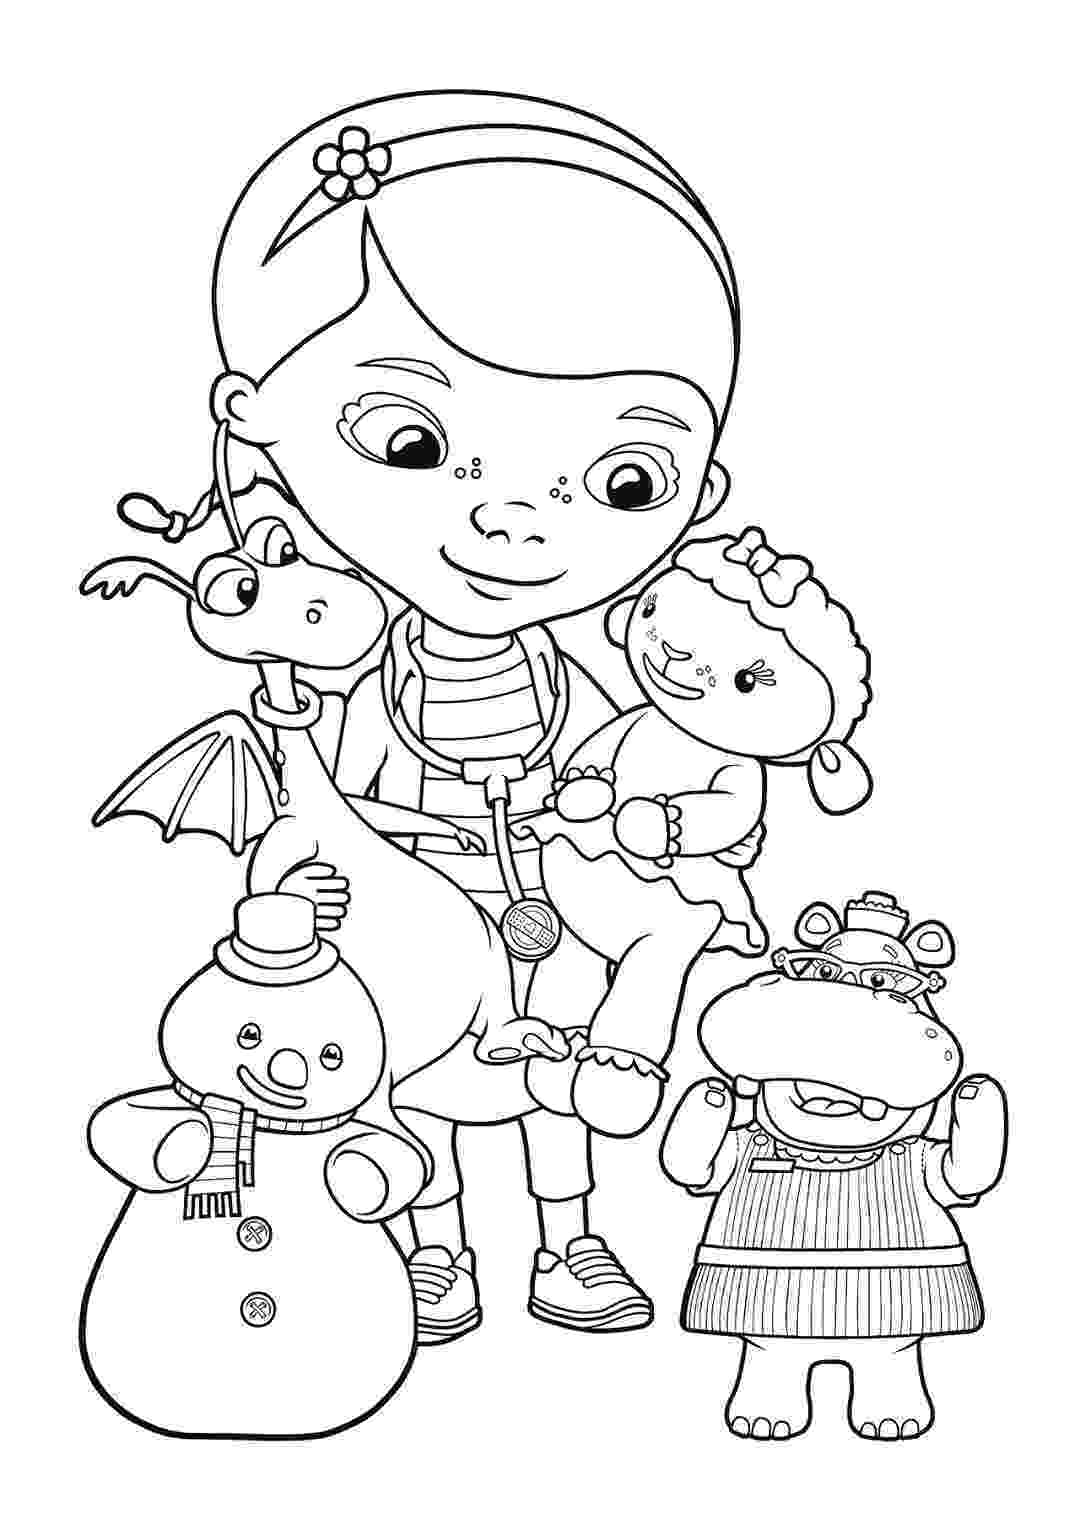 coloring pages for free madagascar coloring pages to download and print for free for coloring pages free